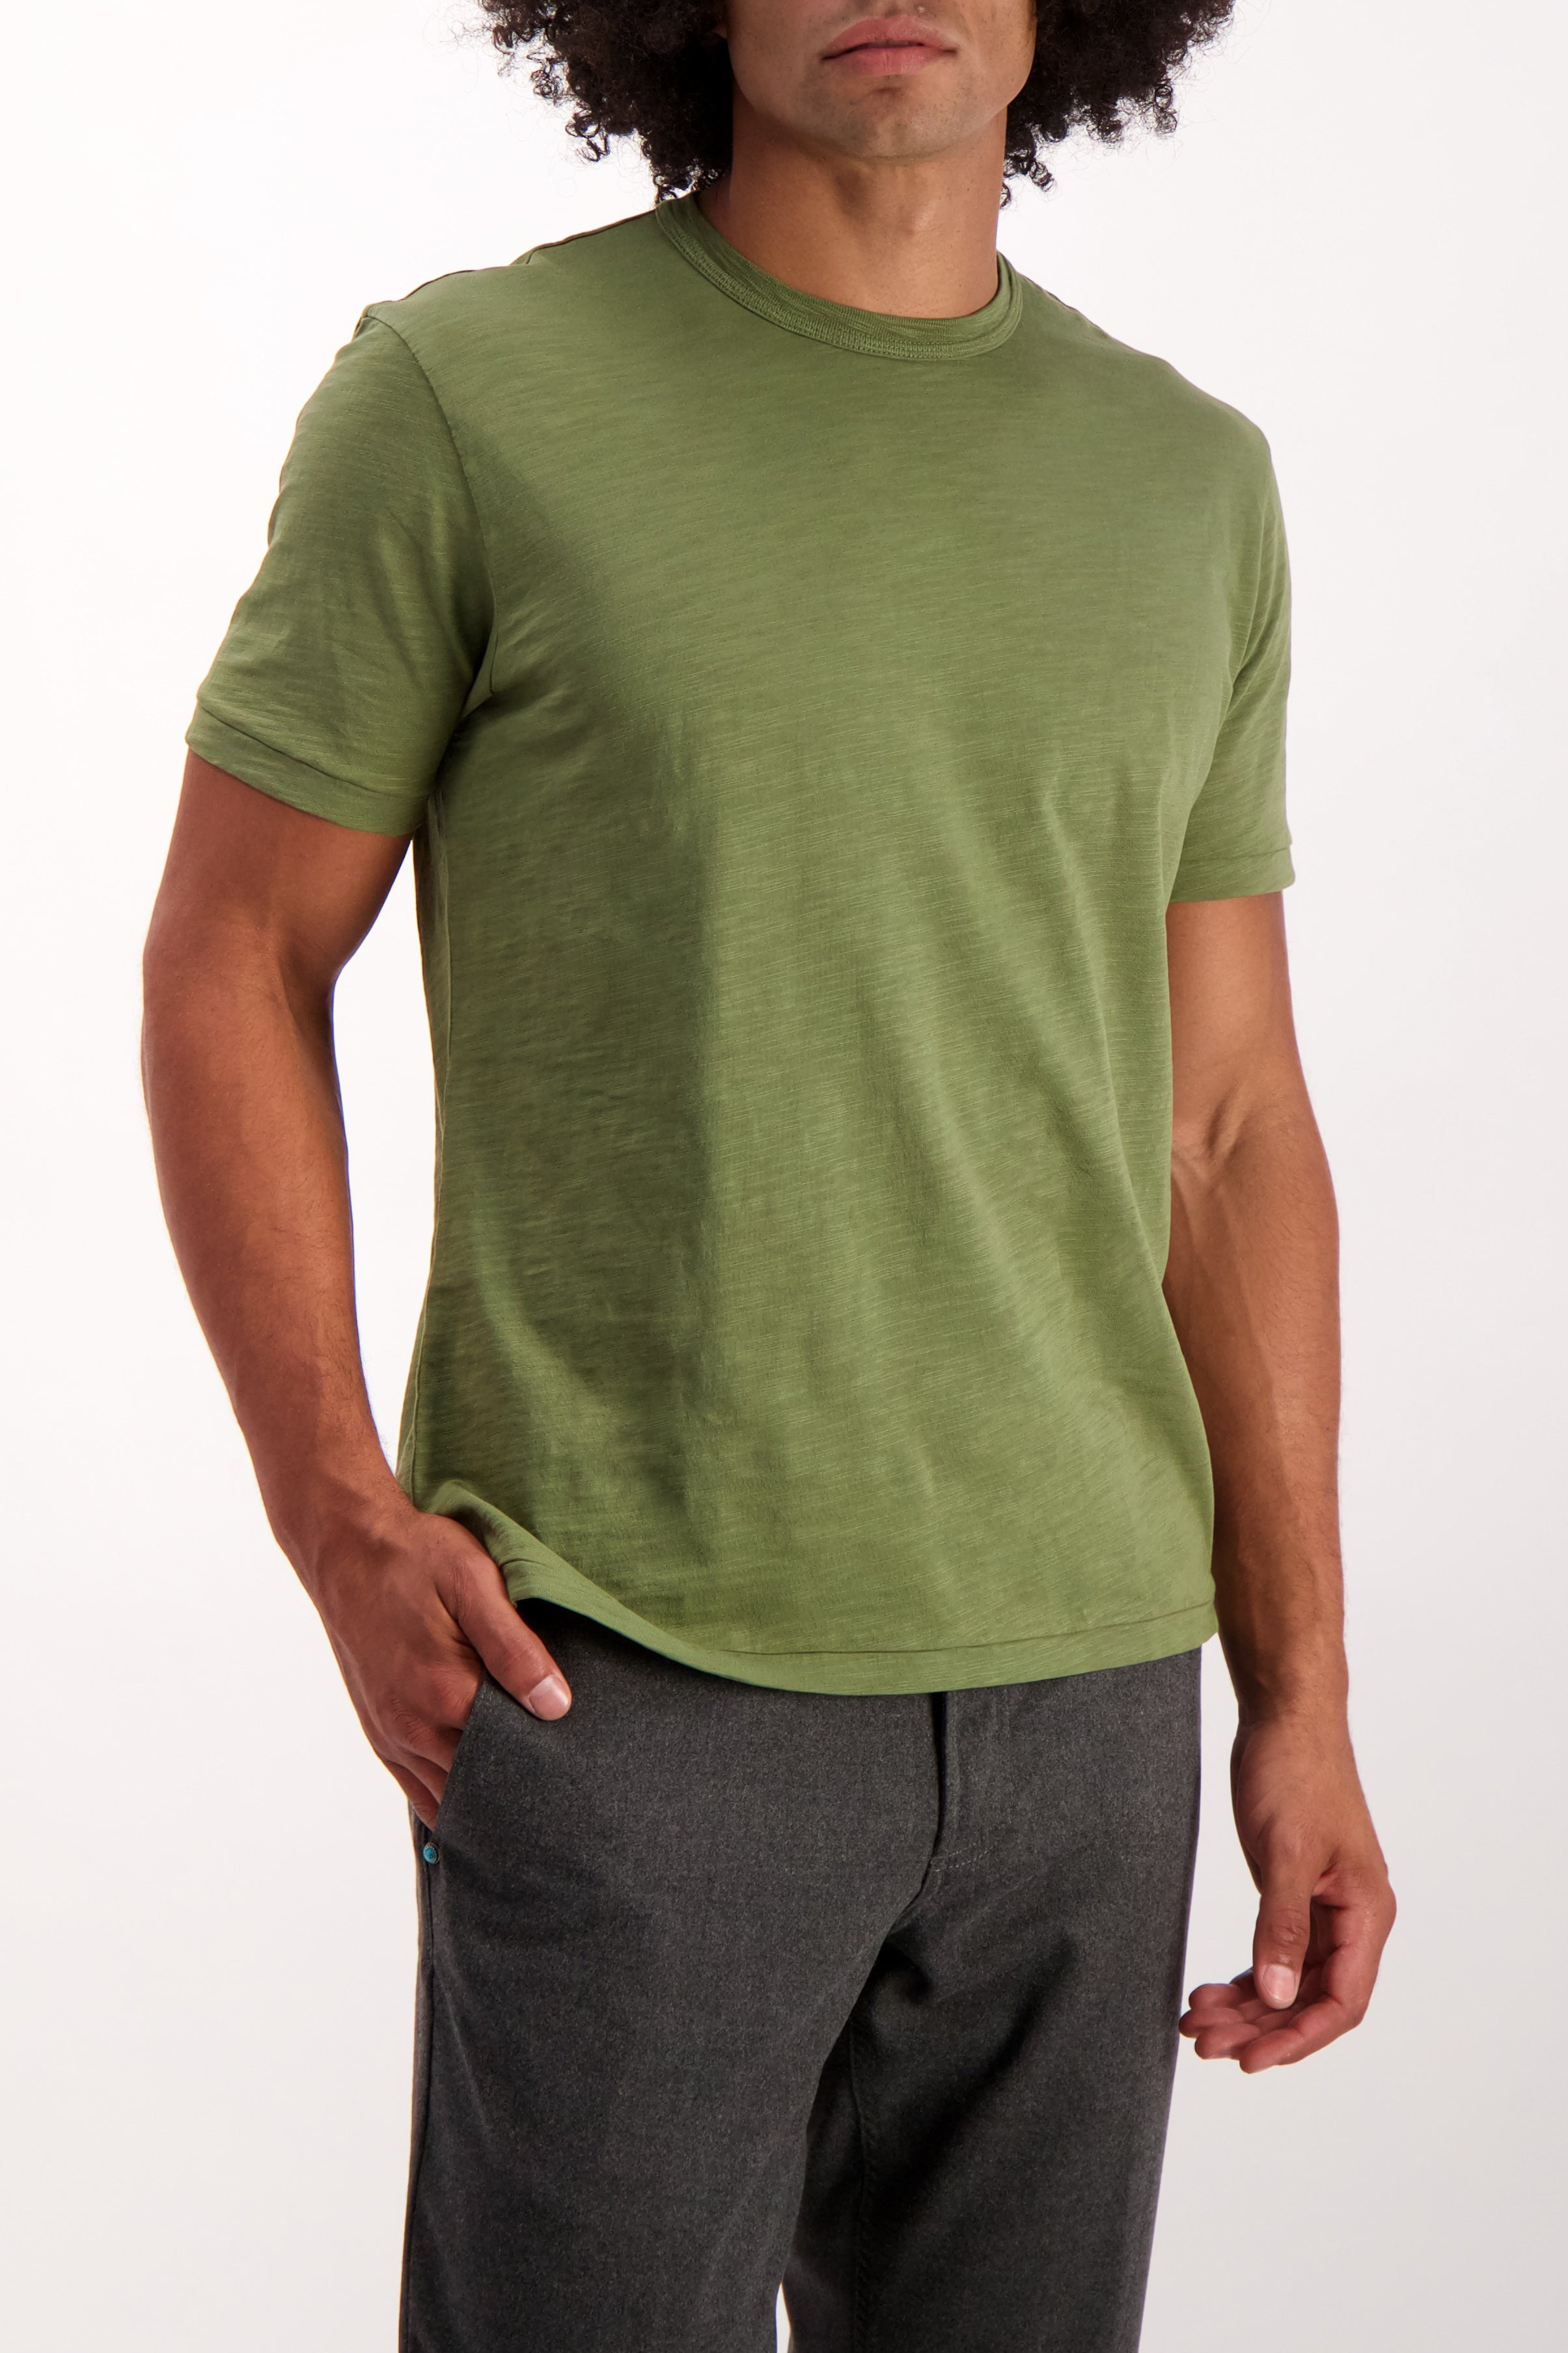 Front Crop Image Of Model Wearing Alex Mill Men's Short Sleeve Slub Cotton Tee Army Green